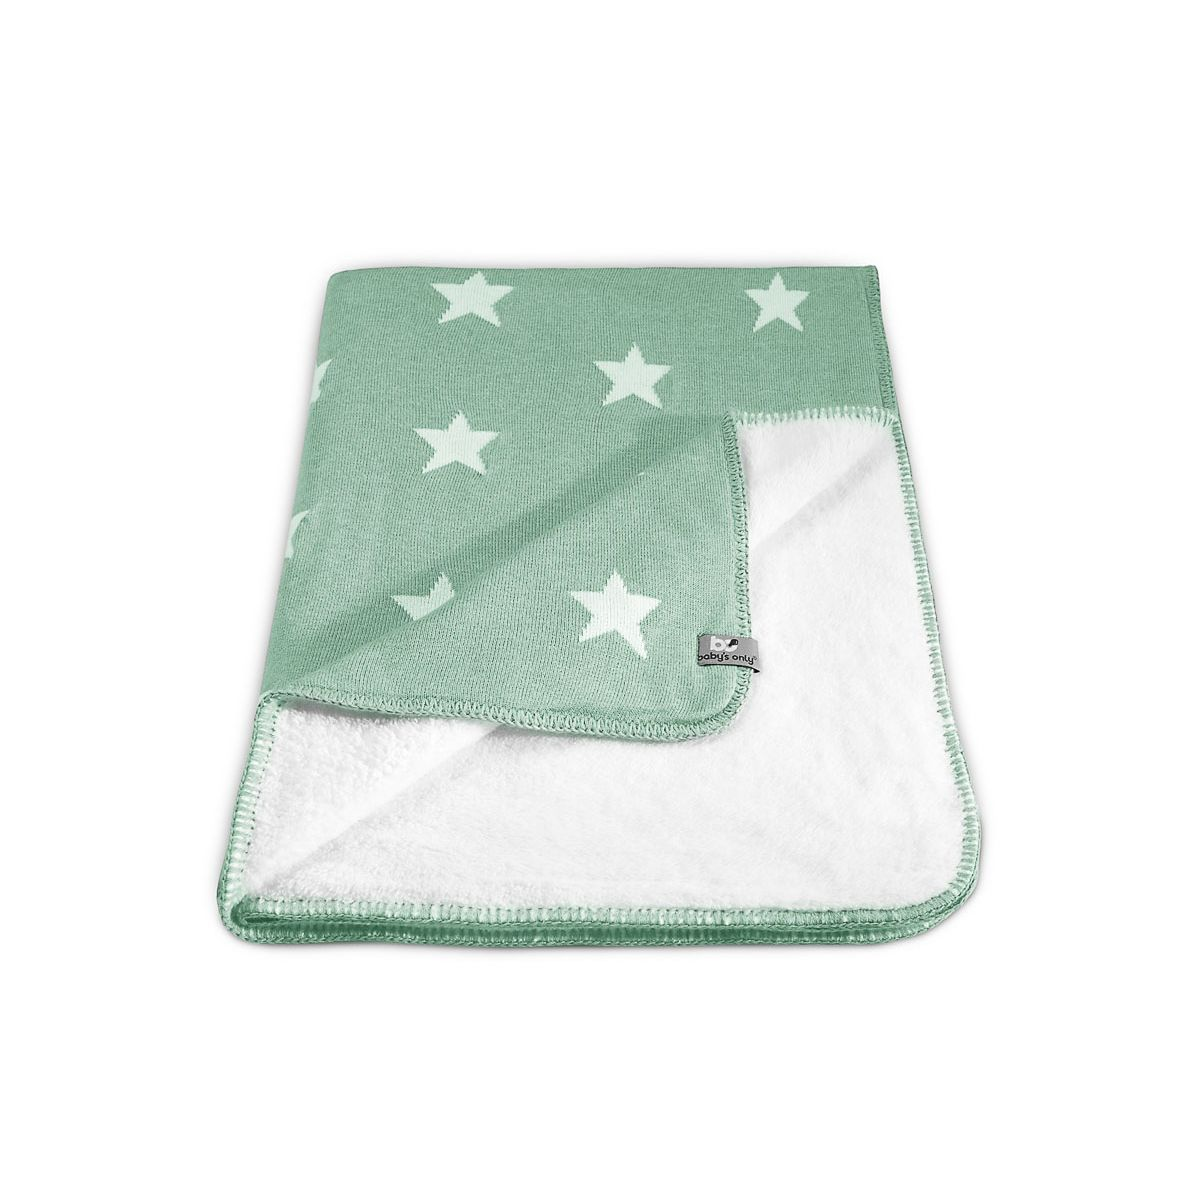 Ledikantdeken teddy Star mint/wit